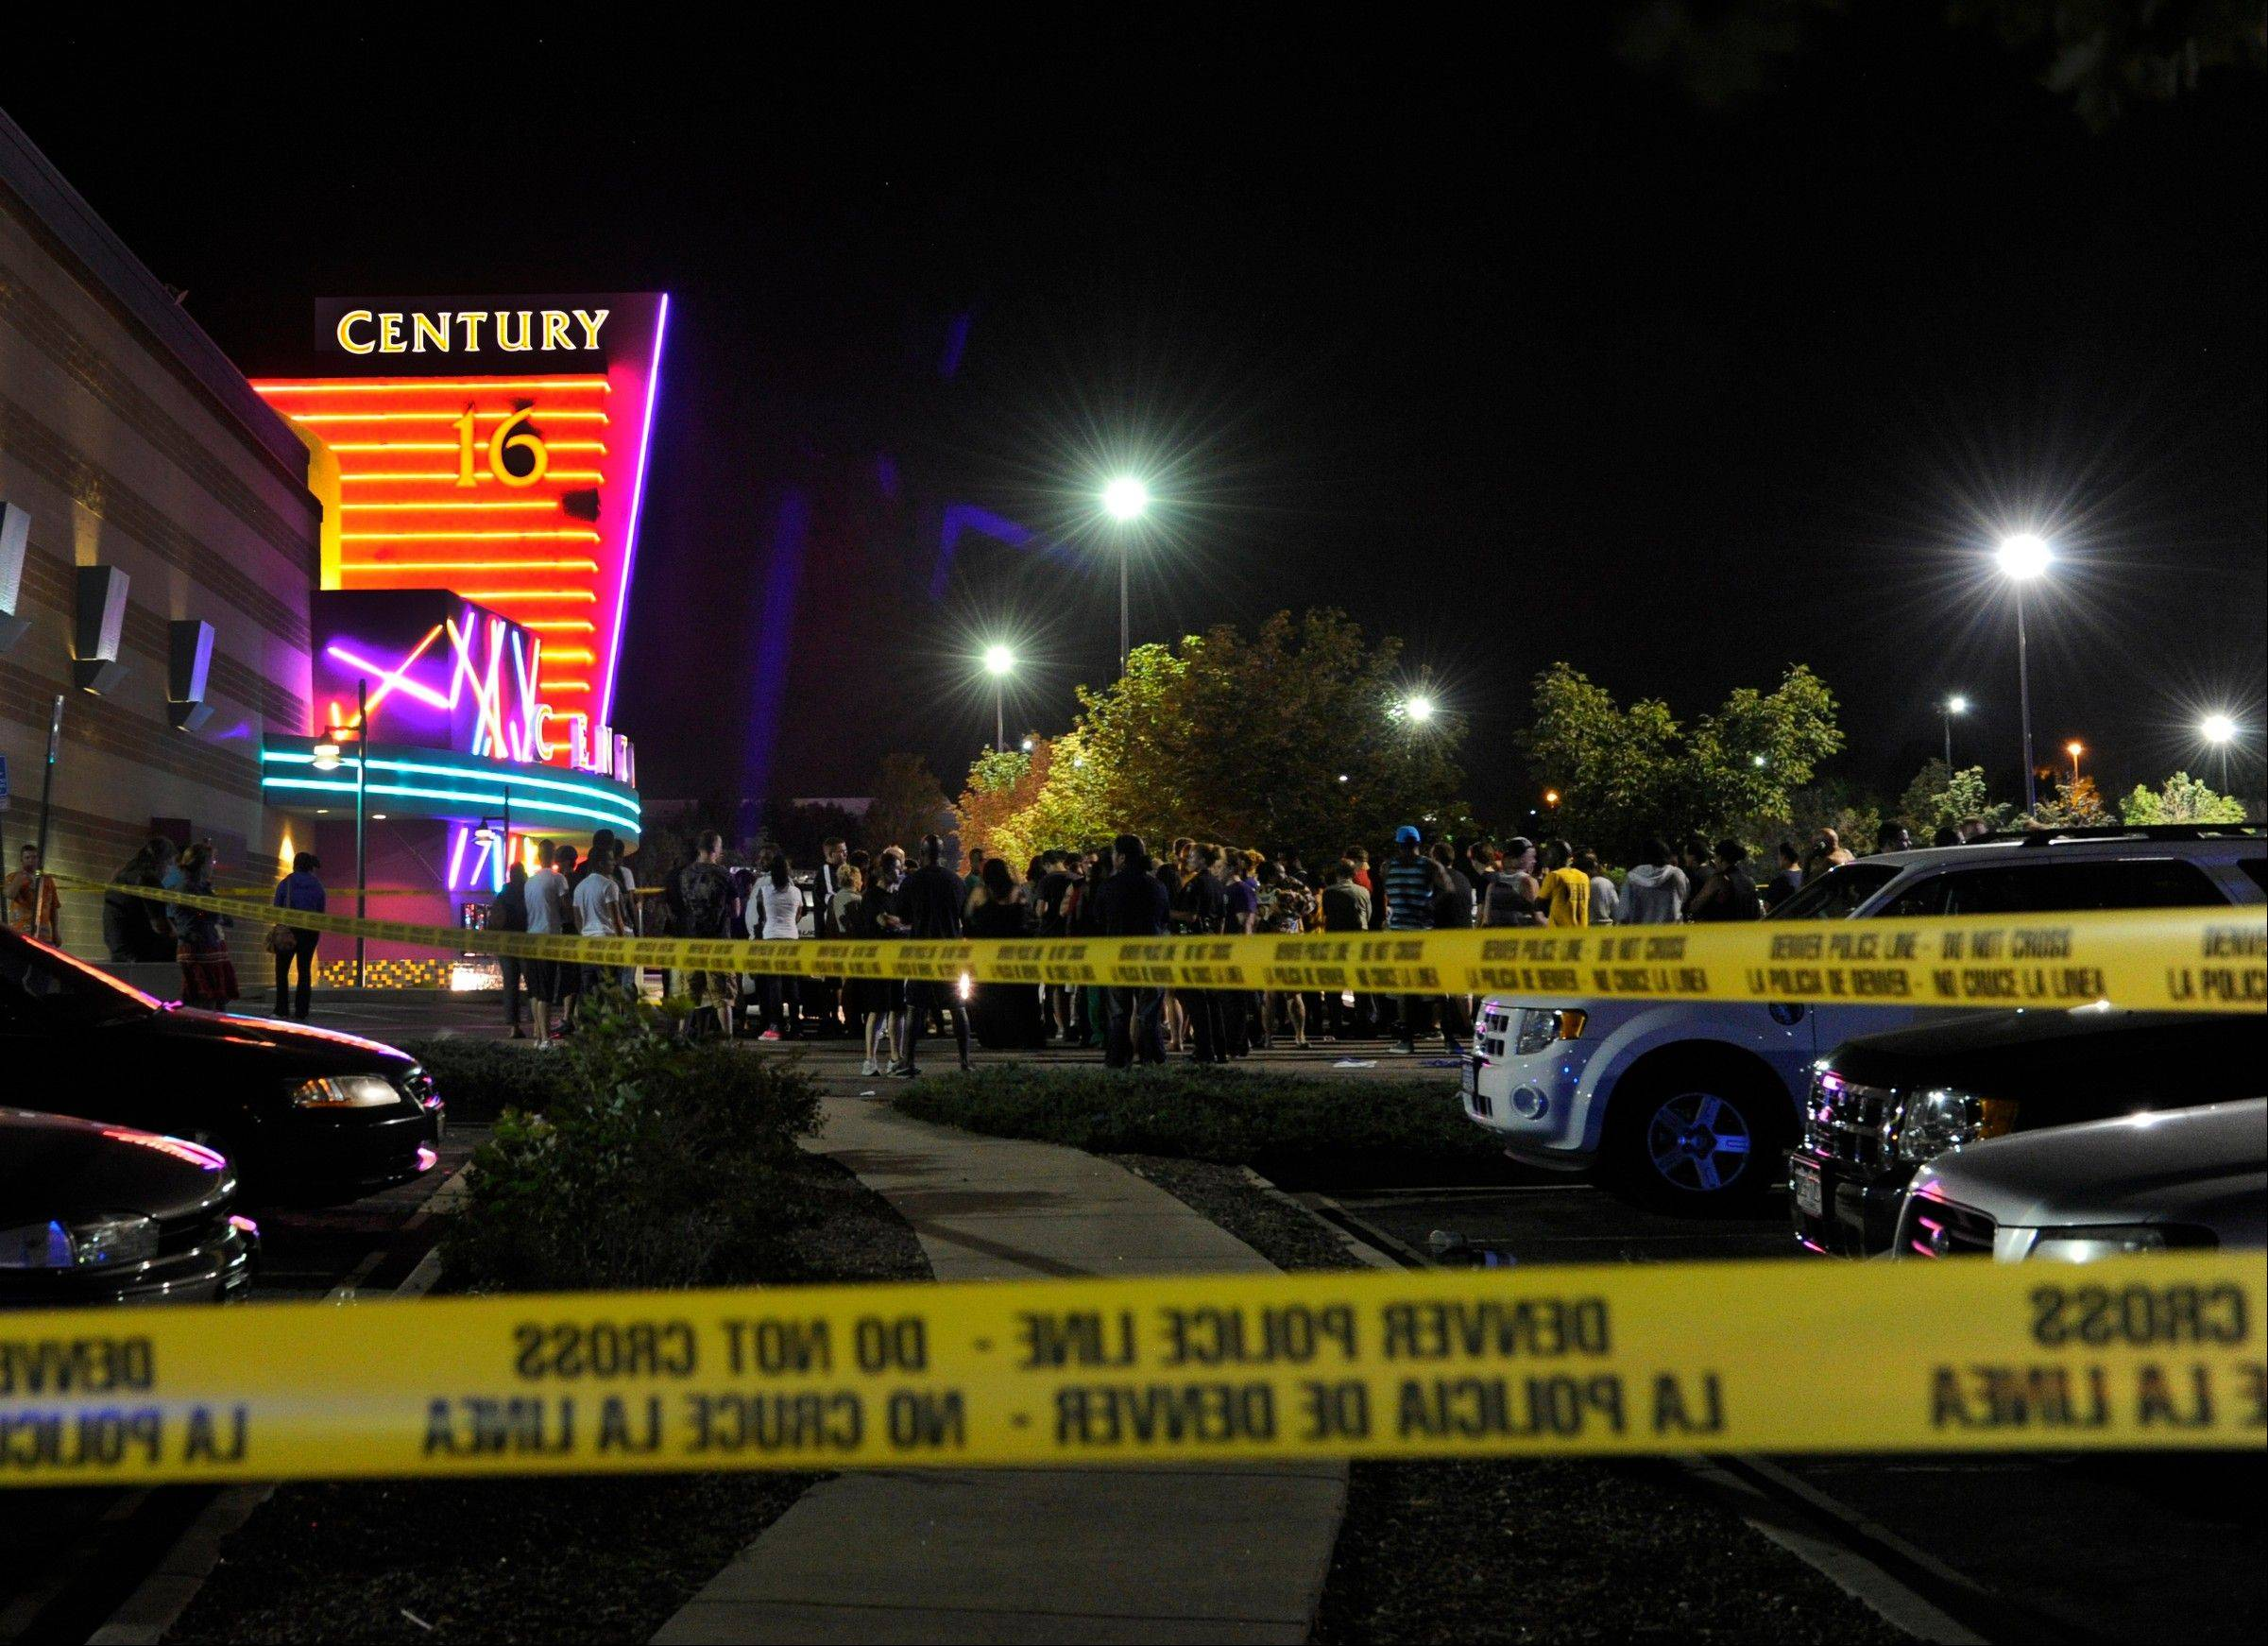 People gather outside the Century 16 movie theater in Aurora, Colo., at the scene of a mass shooting early Friday morning, July 20.